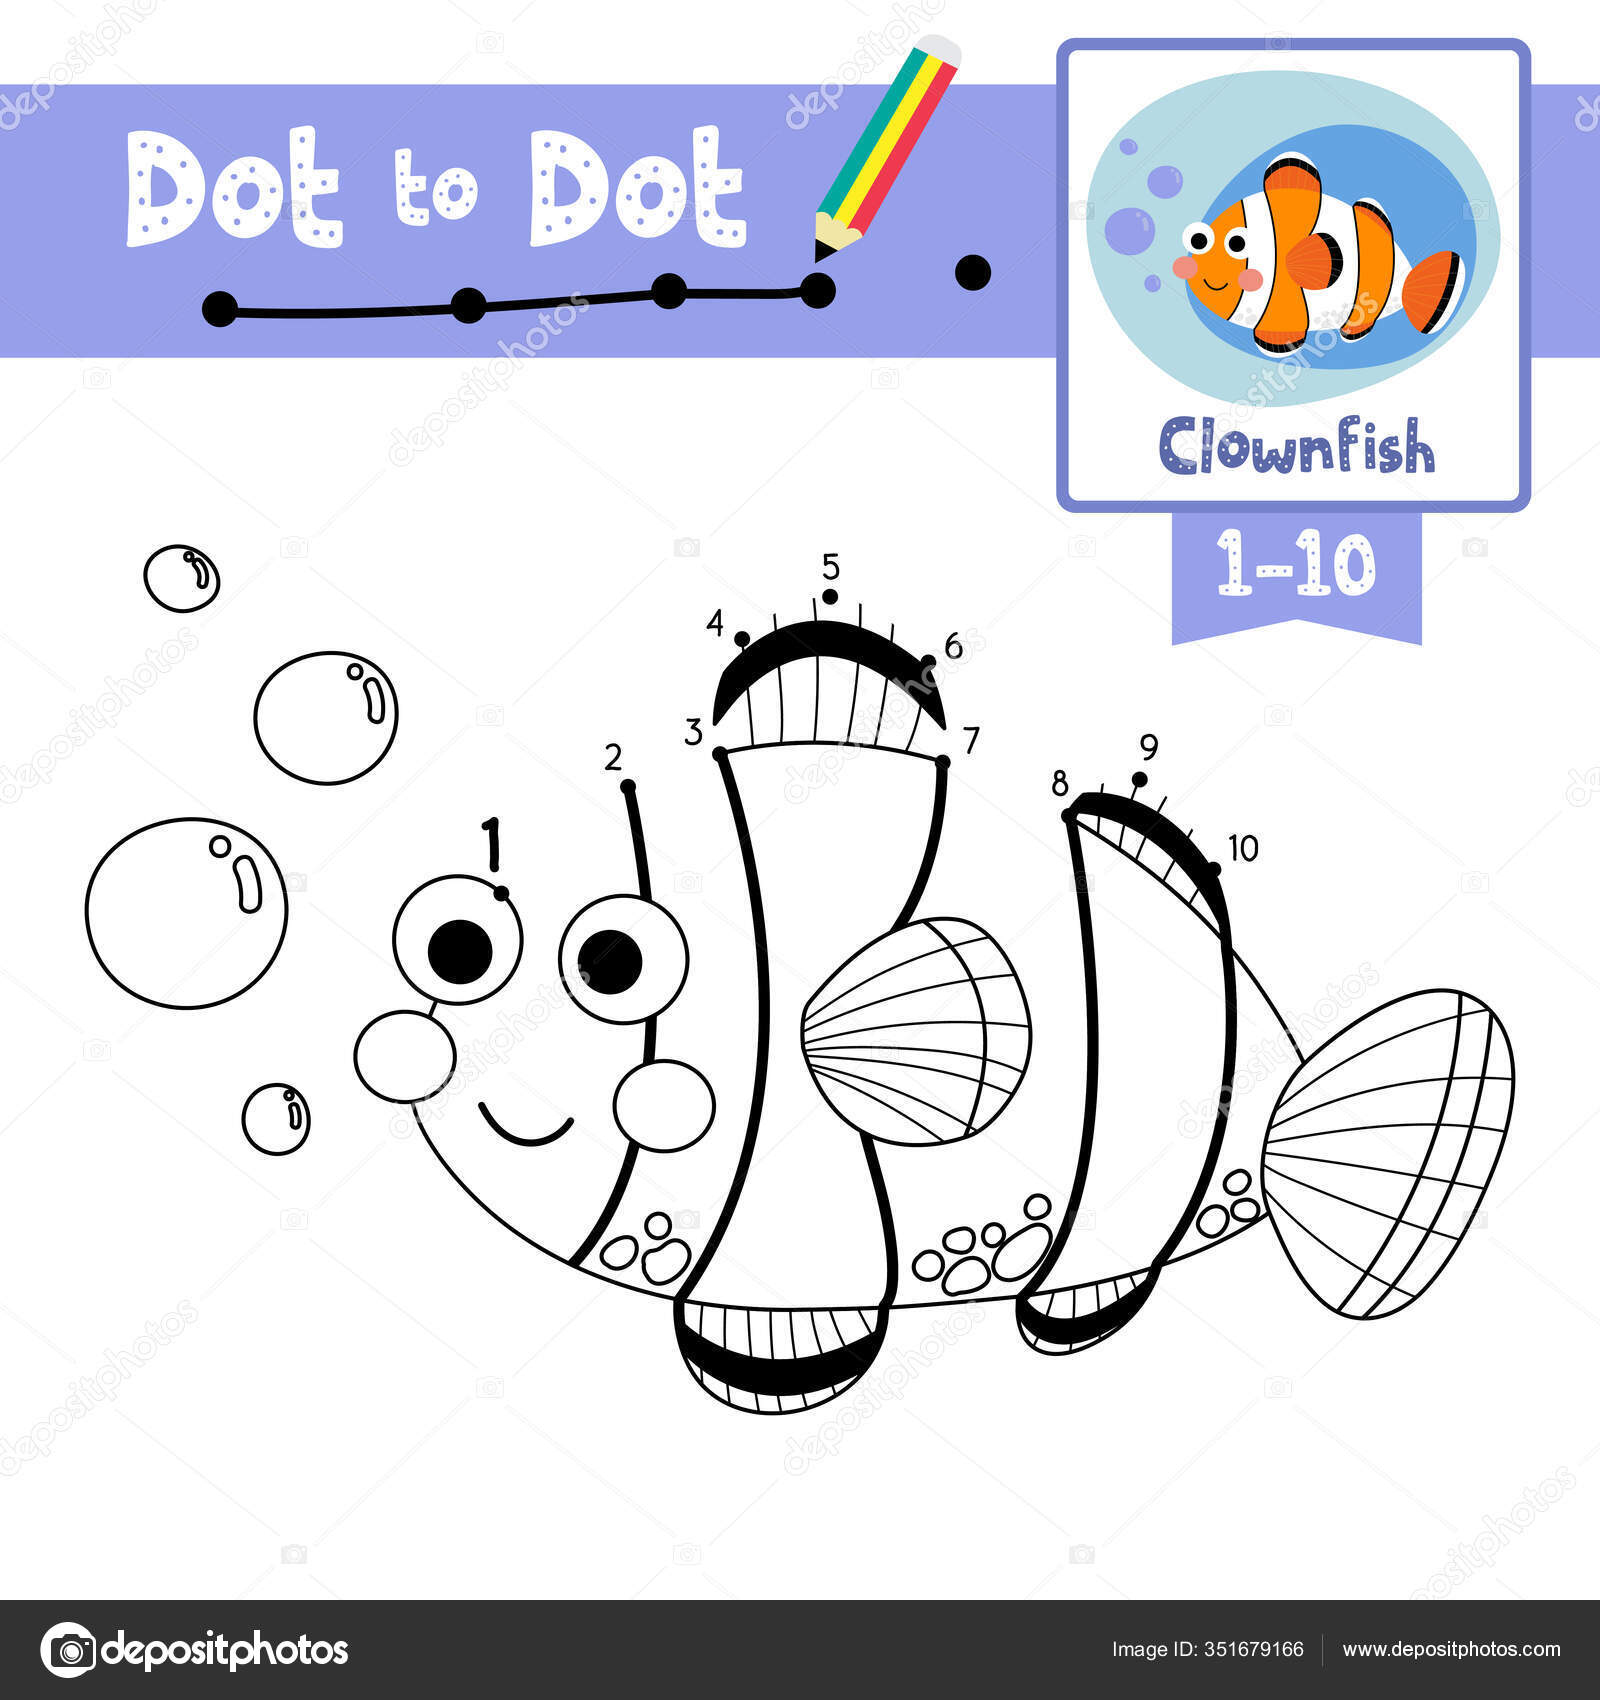 Dot Dot Educational Game Coloring Book Happy Clownfish